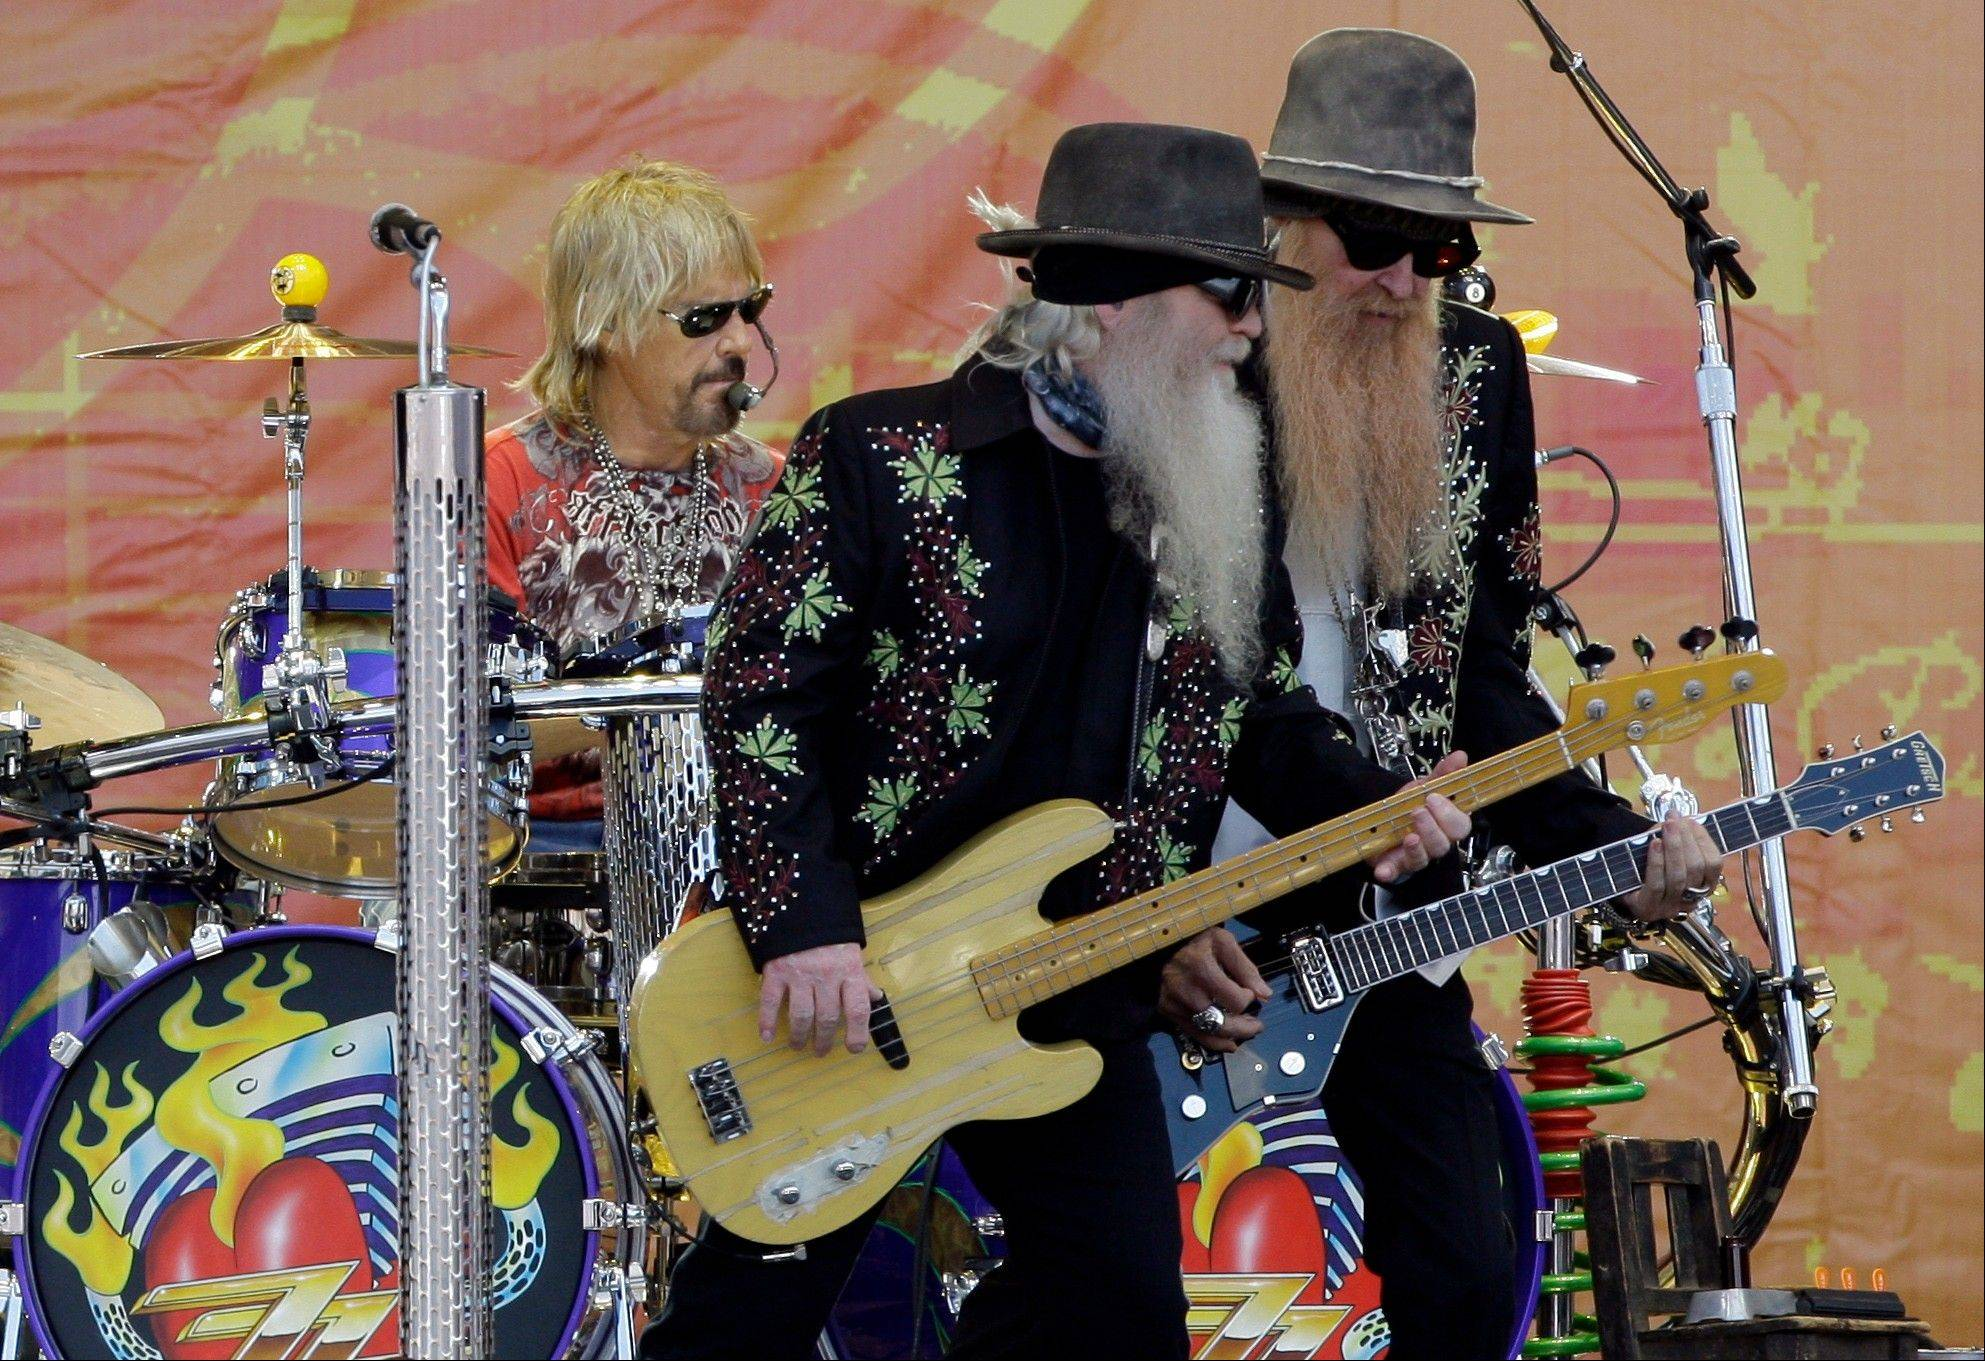 Forty-three bands will play at this year's Ribfest. Notable performers include ZZ Top as well as the Steve Miller Band, Joe Walsh, Joe Nichols and Thompson Square.